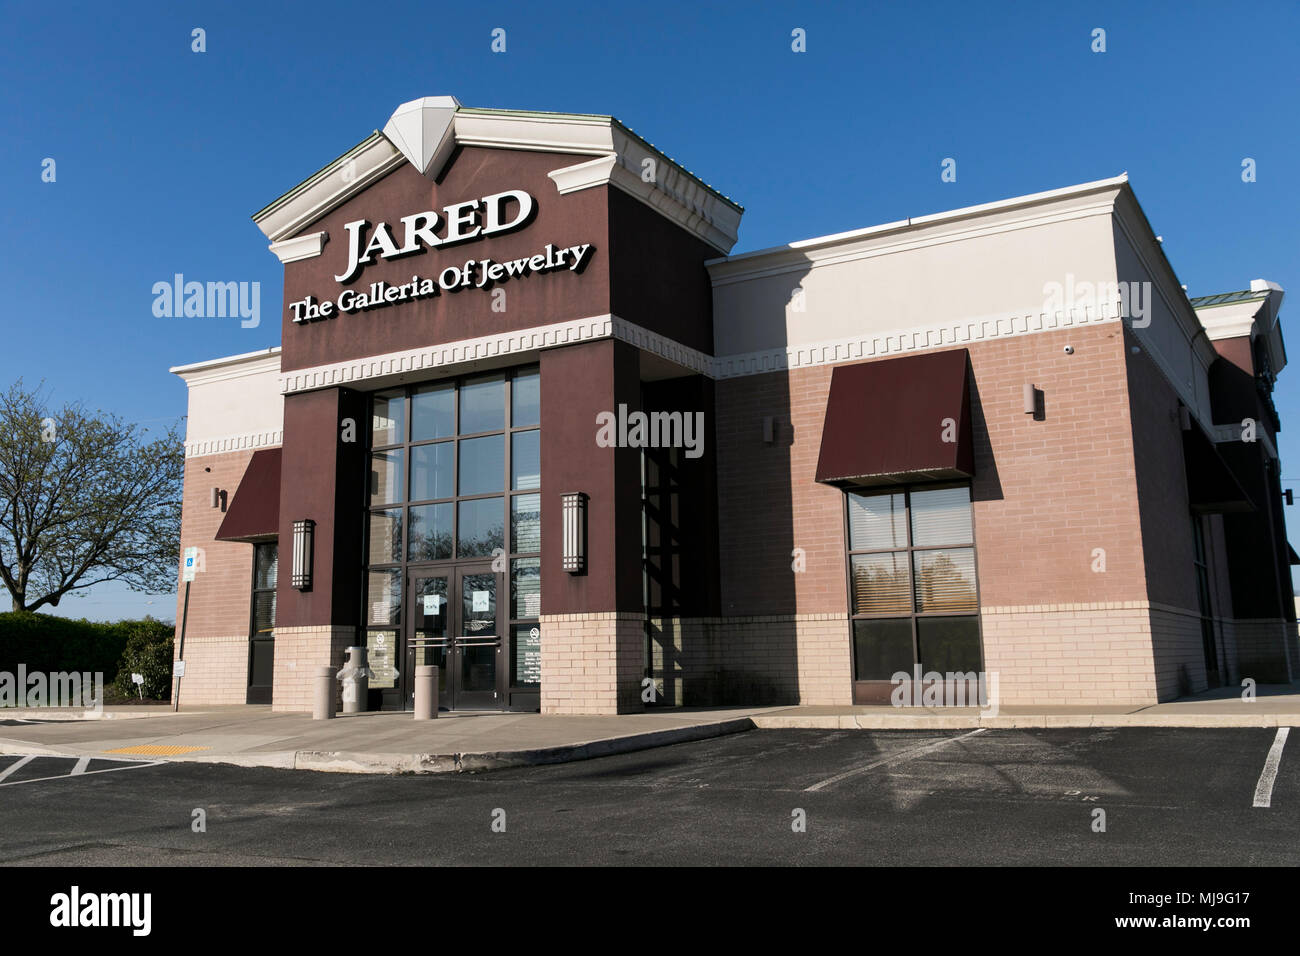 Jared The Galleria Of Jewelry Locations Most Popular and Best